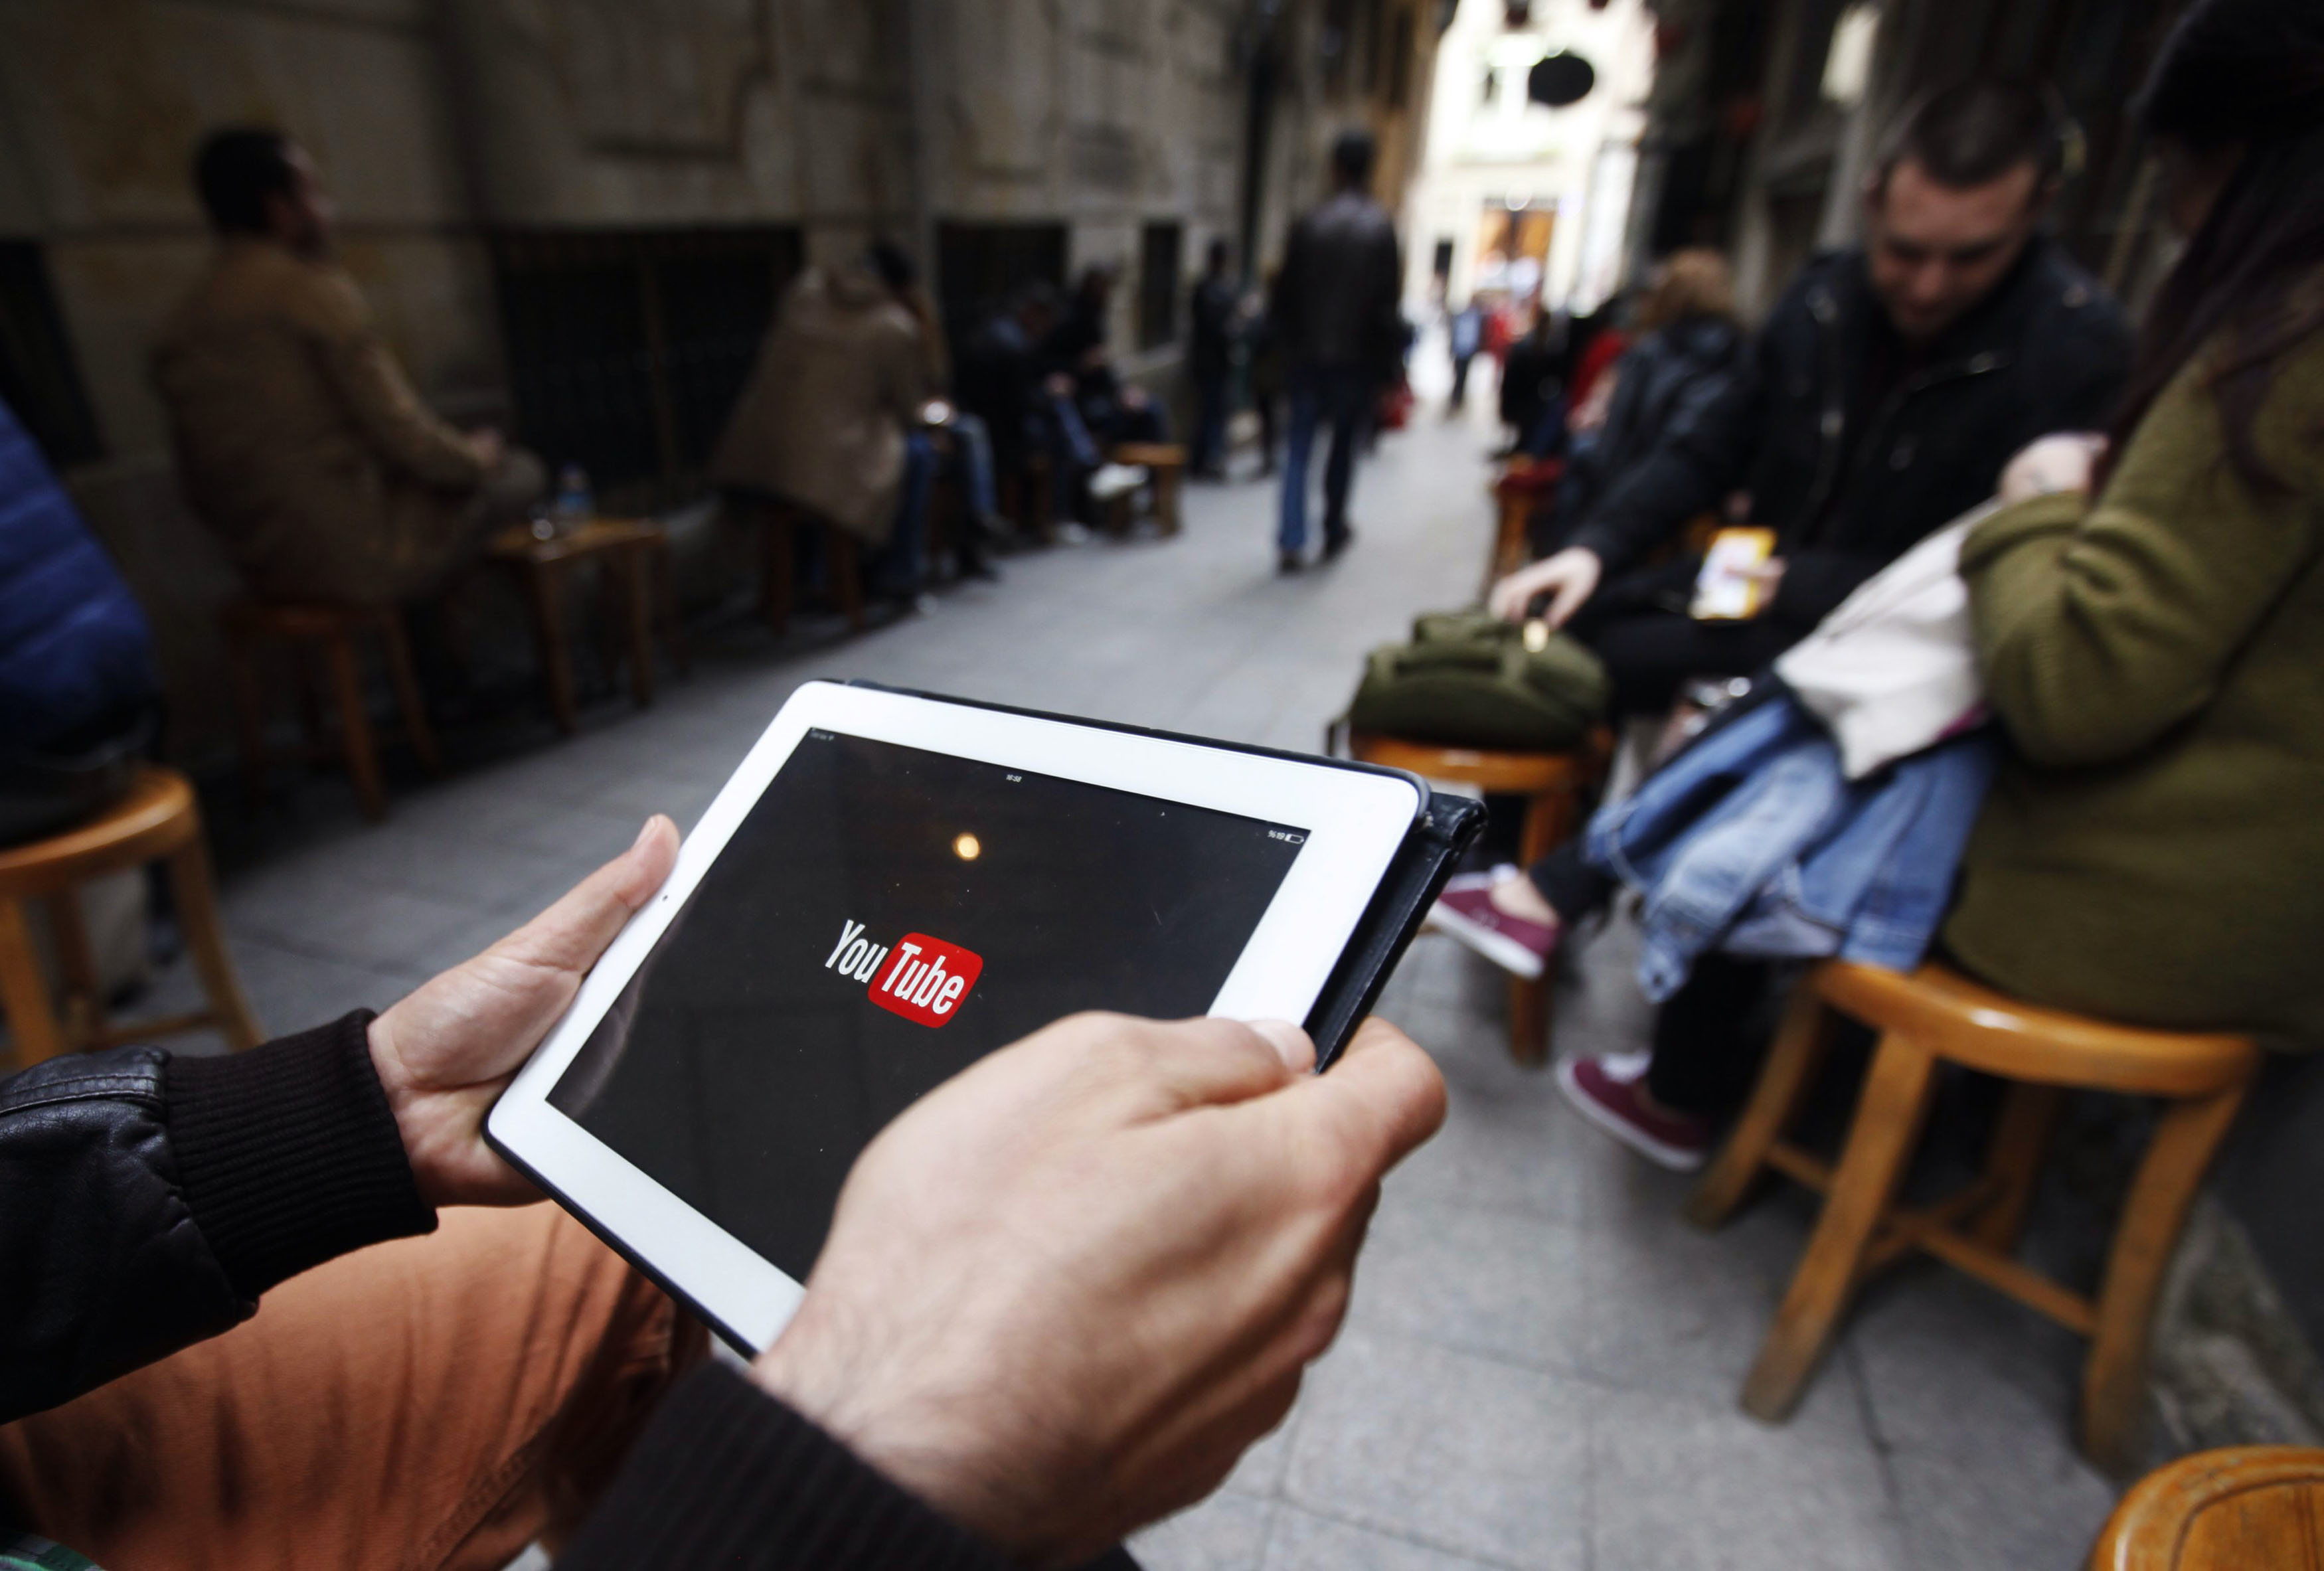 A man tries to connect to YouTube with his tablet at a café in Istanbul on March 27, 2014.